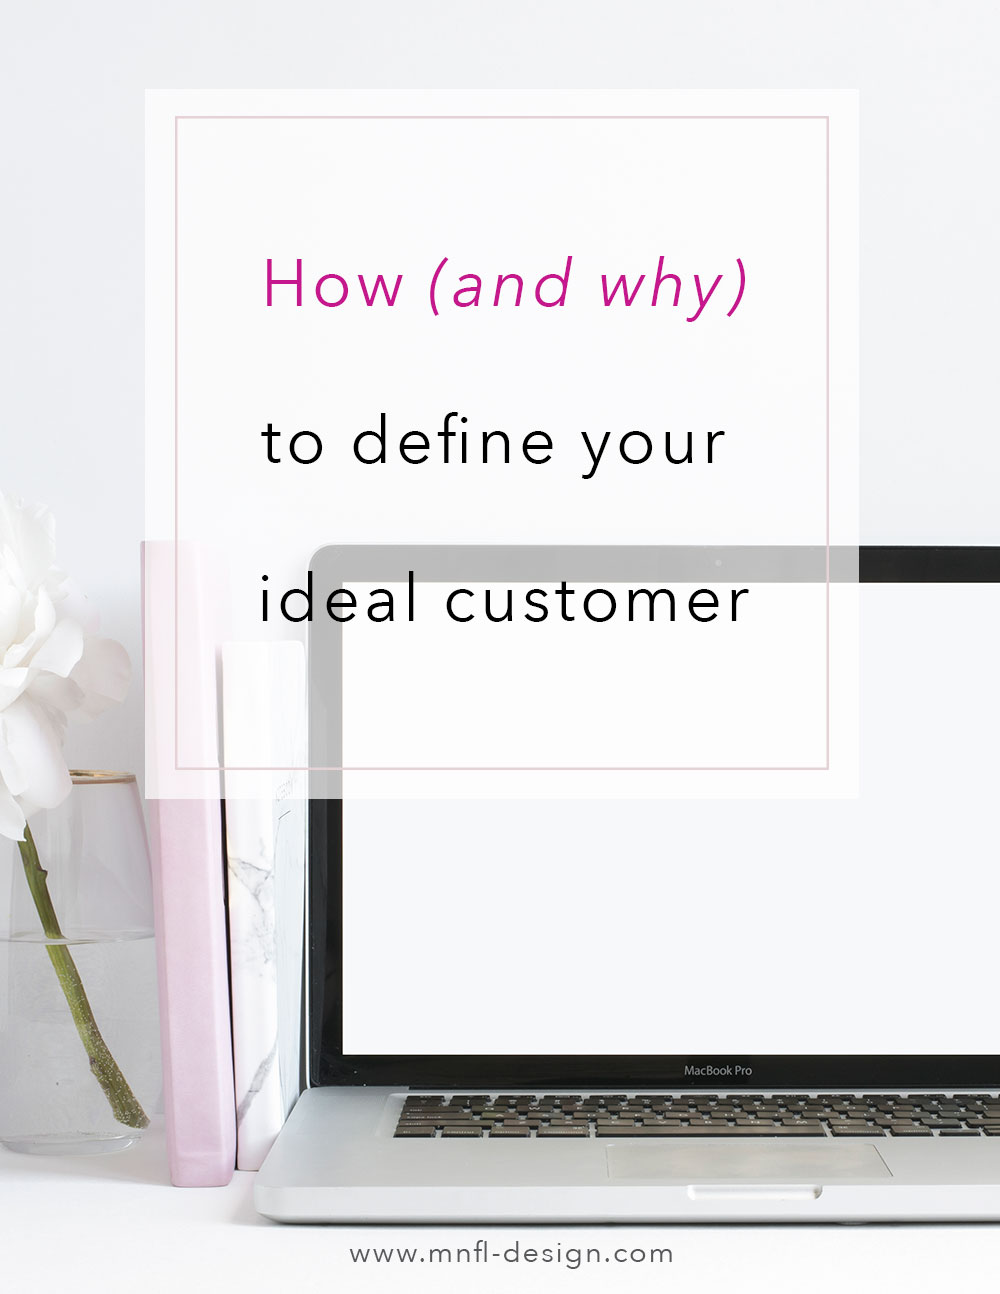 How-to-define-your-ideal-customer-2.jpg